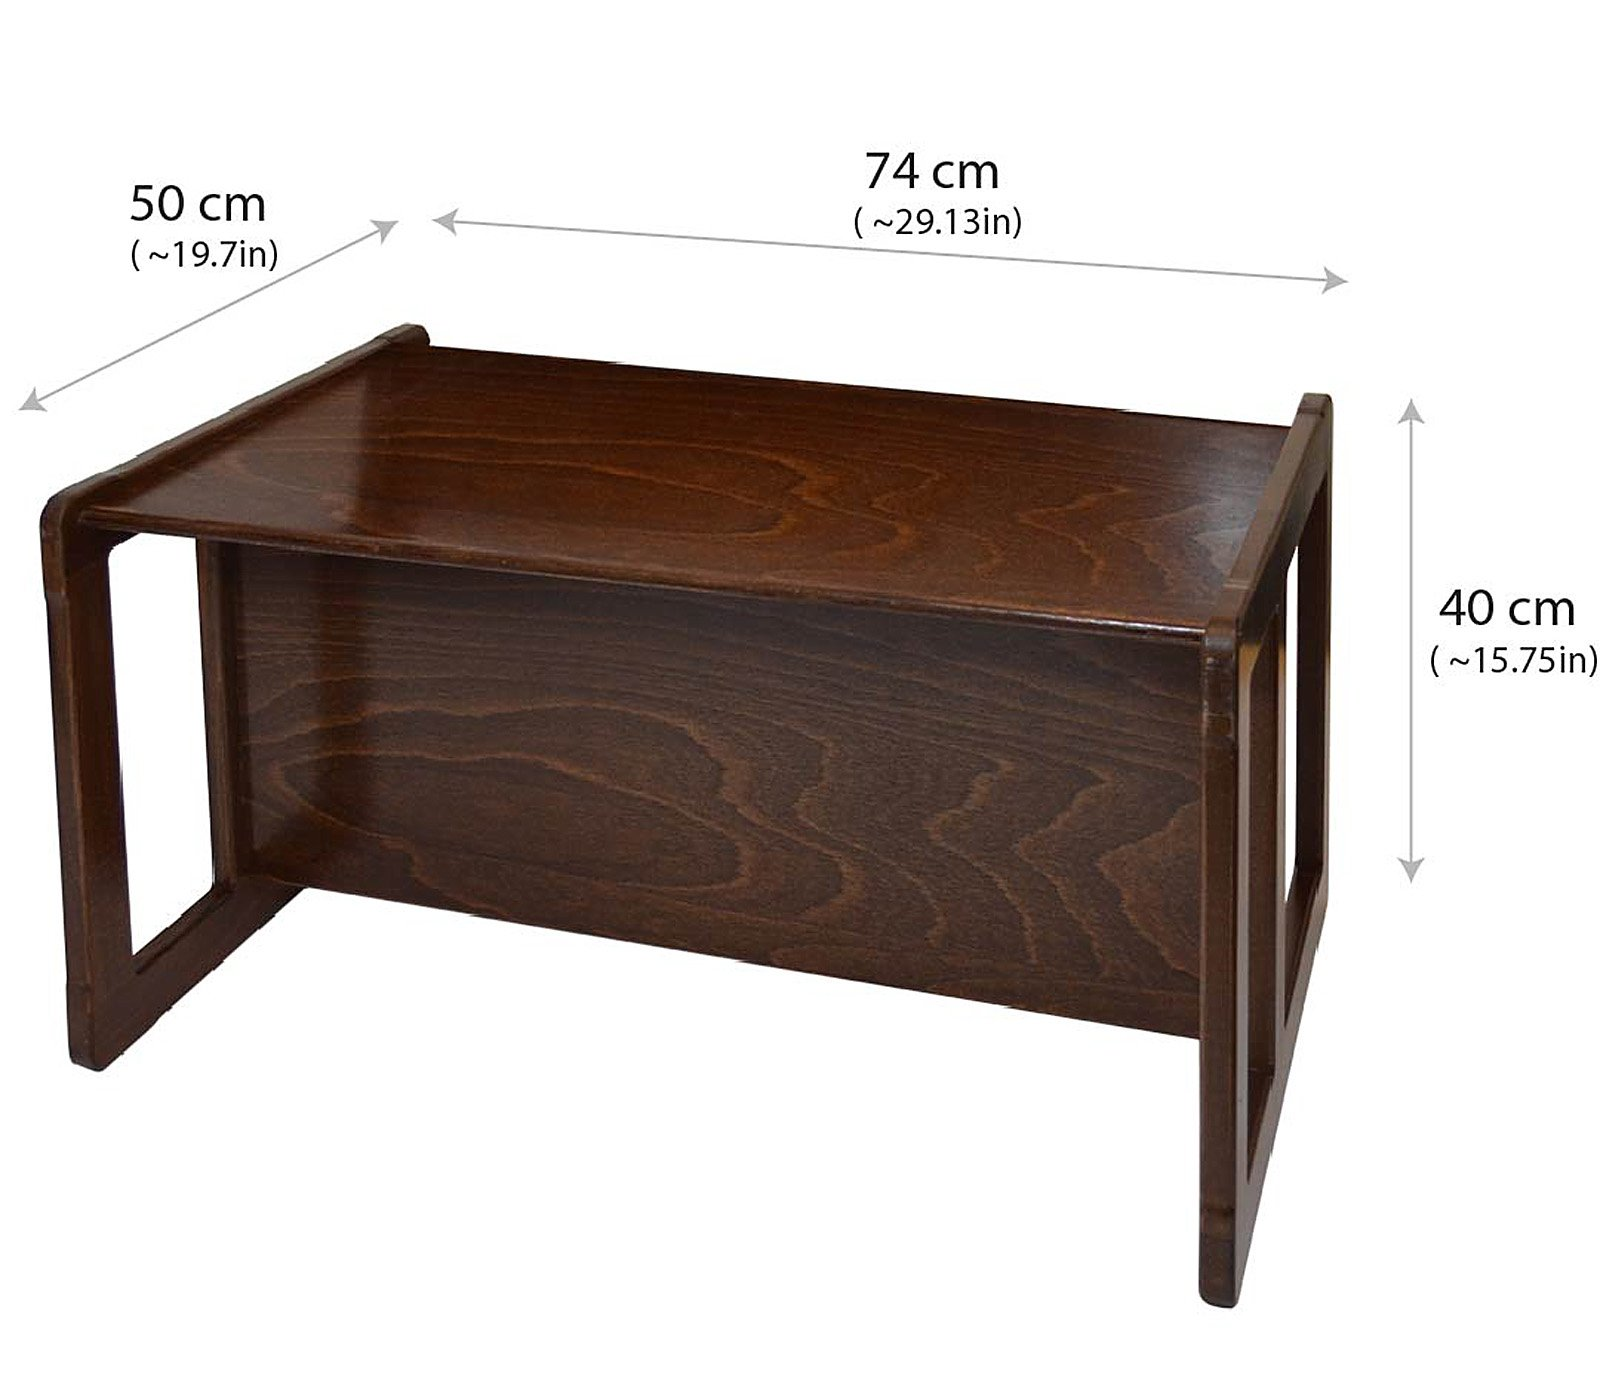 3 in 1 Childrens Multifunctional Furniture Set of 4, Two Small Chairs or Tables and One Small Bench or Table and One Large Bench or Table Beech Wood, Dark Stained by Obique Ltd (Image #3)